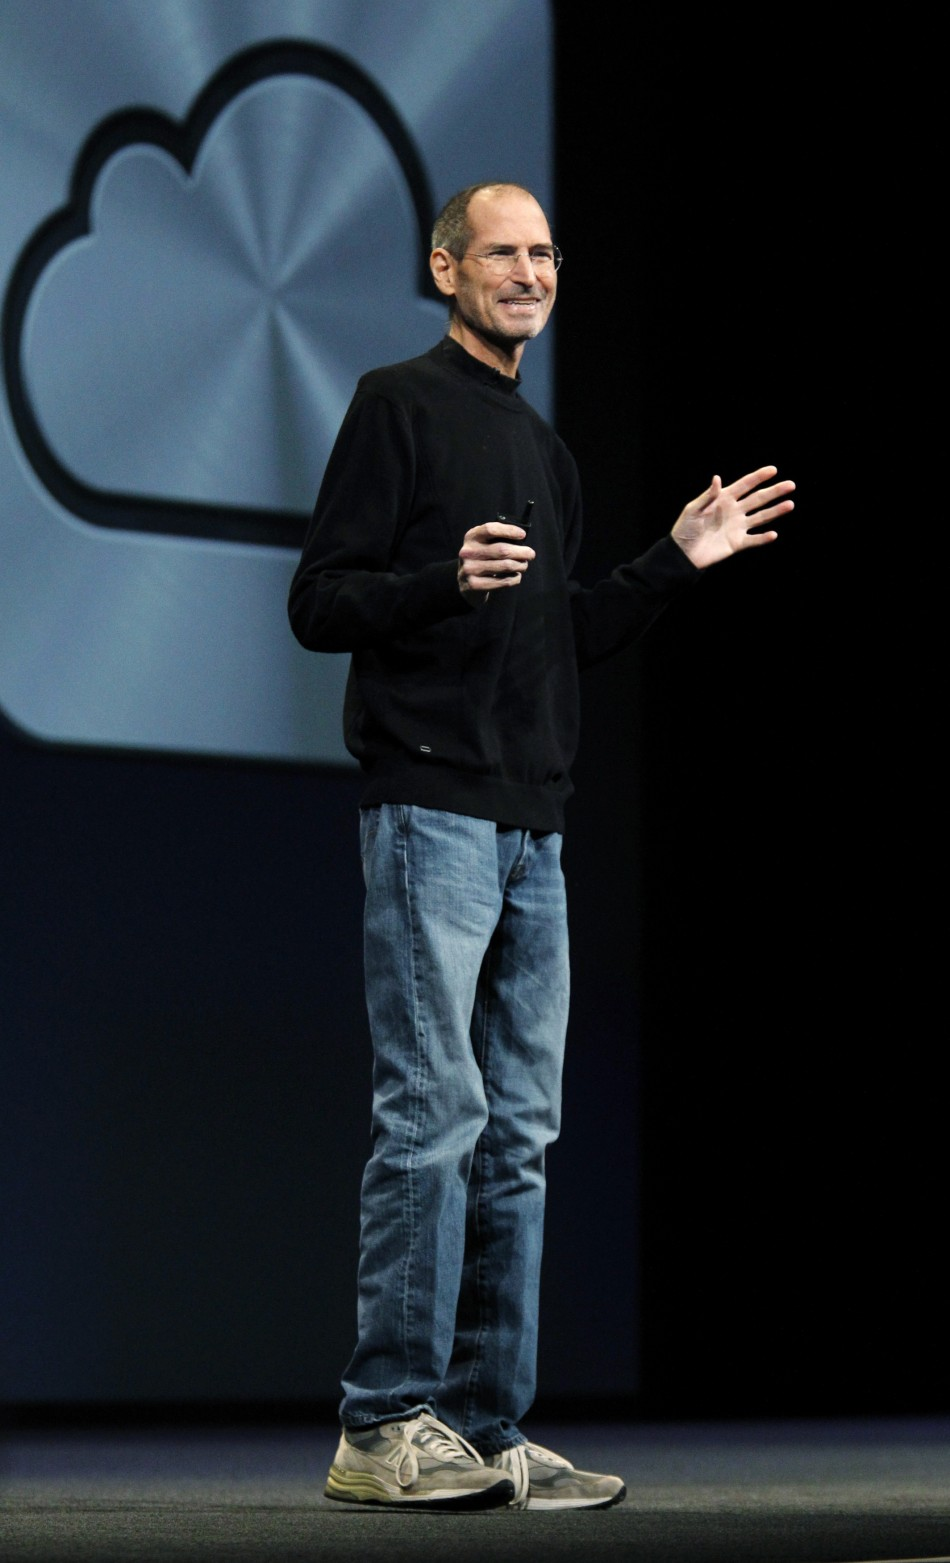 Steve Jobs Death: Co-Founder's Death Leads to Question About Apple's Future